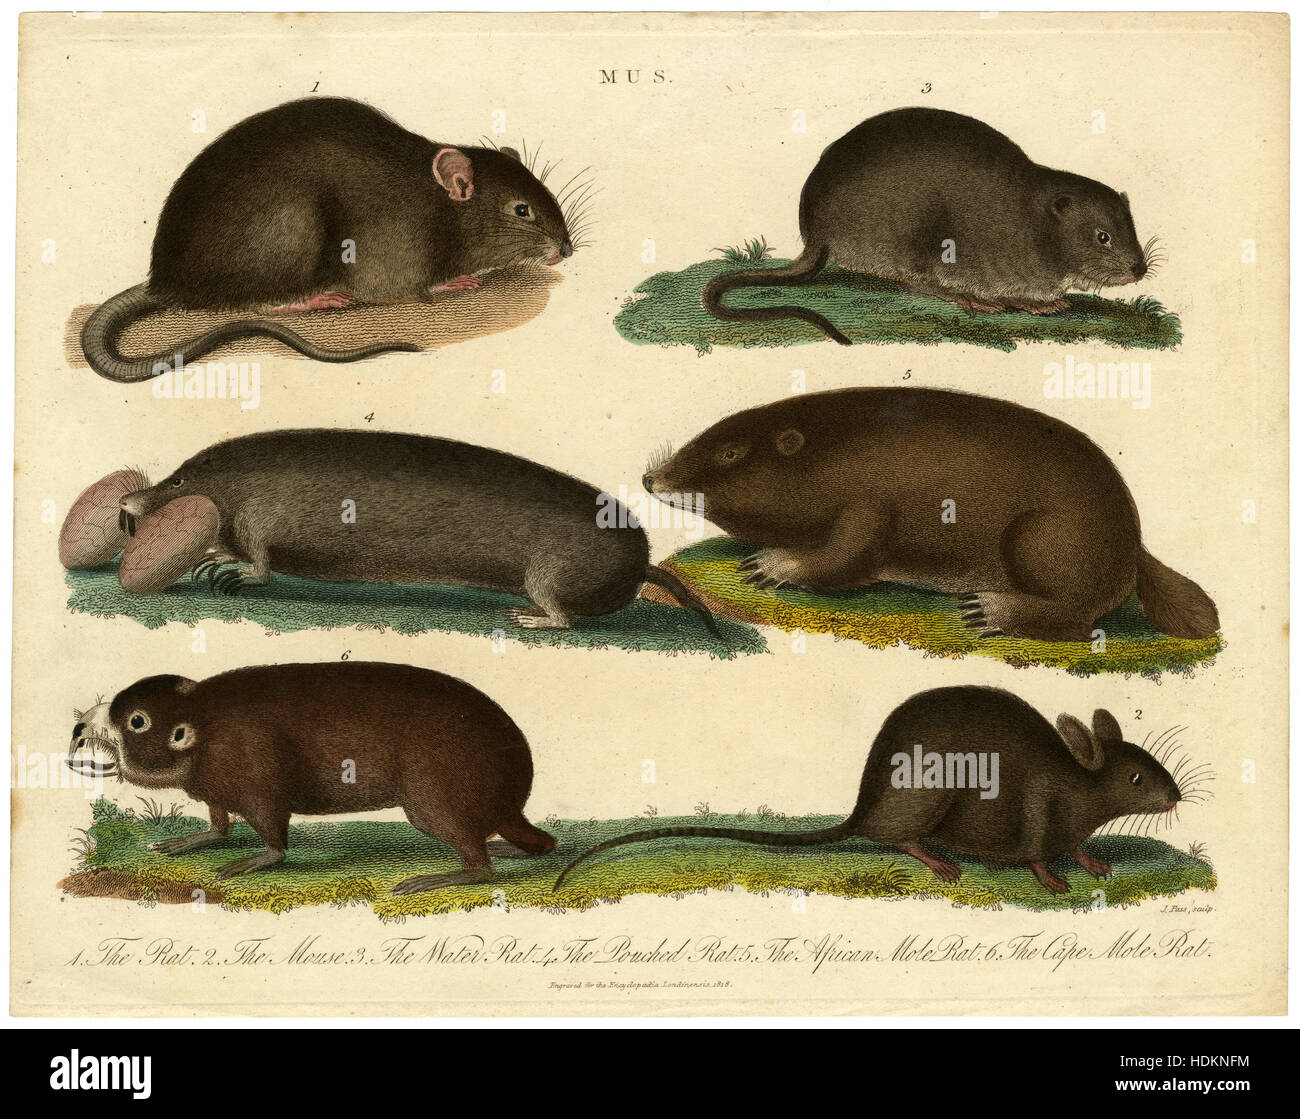 Antique 1818 engraving from the London Encyclopedia showing genus Mus — The Rat, The Mouse, The Water Rat, The Pouched - Stock Image